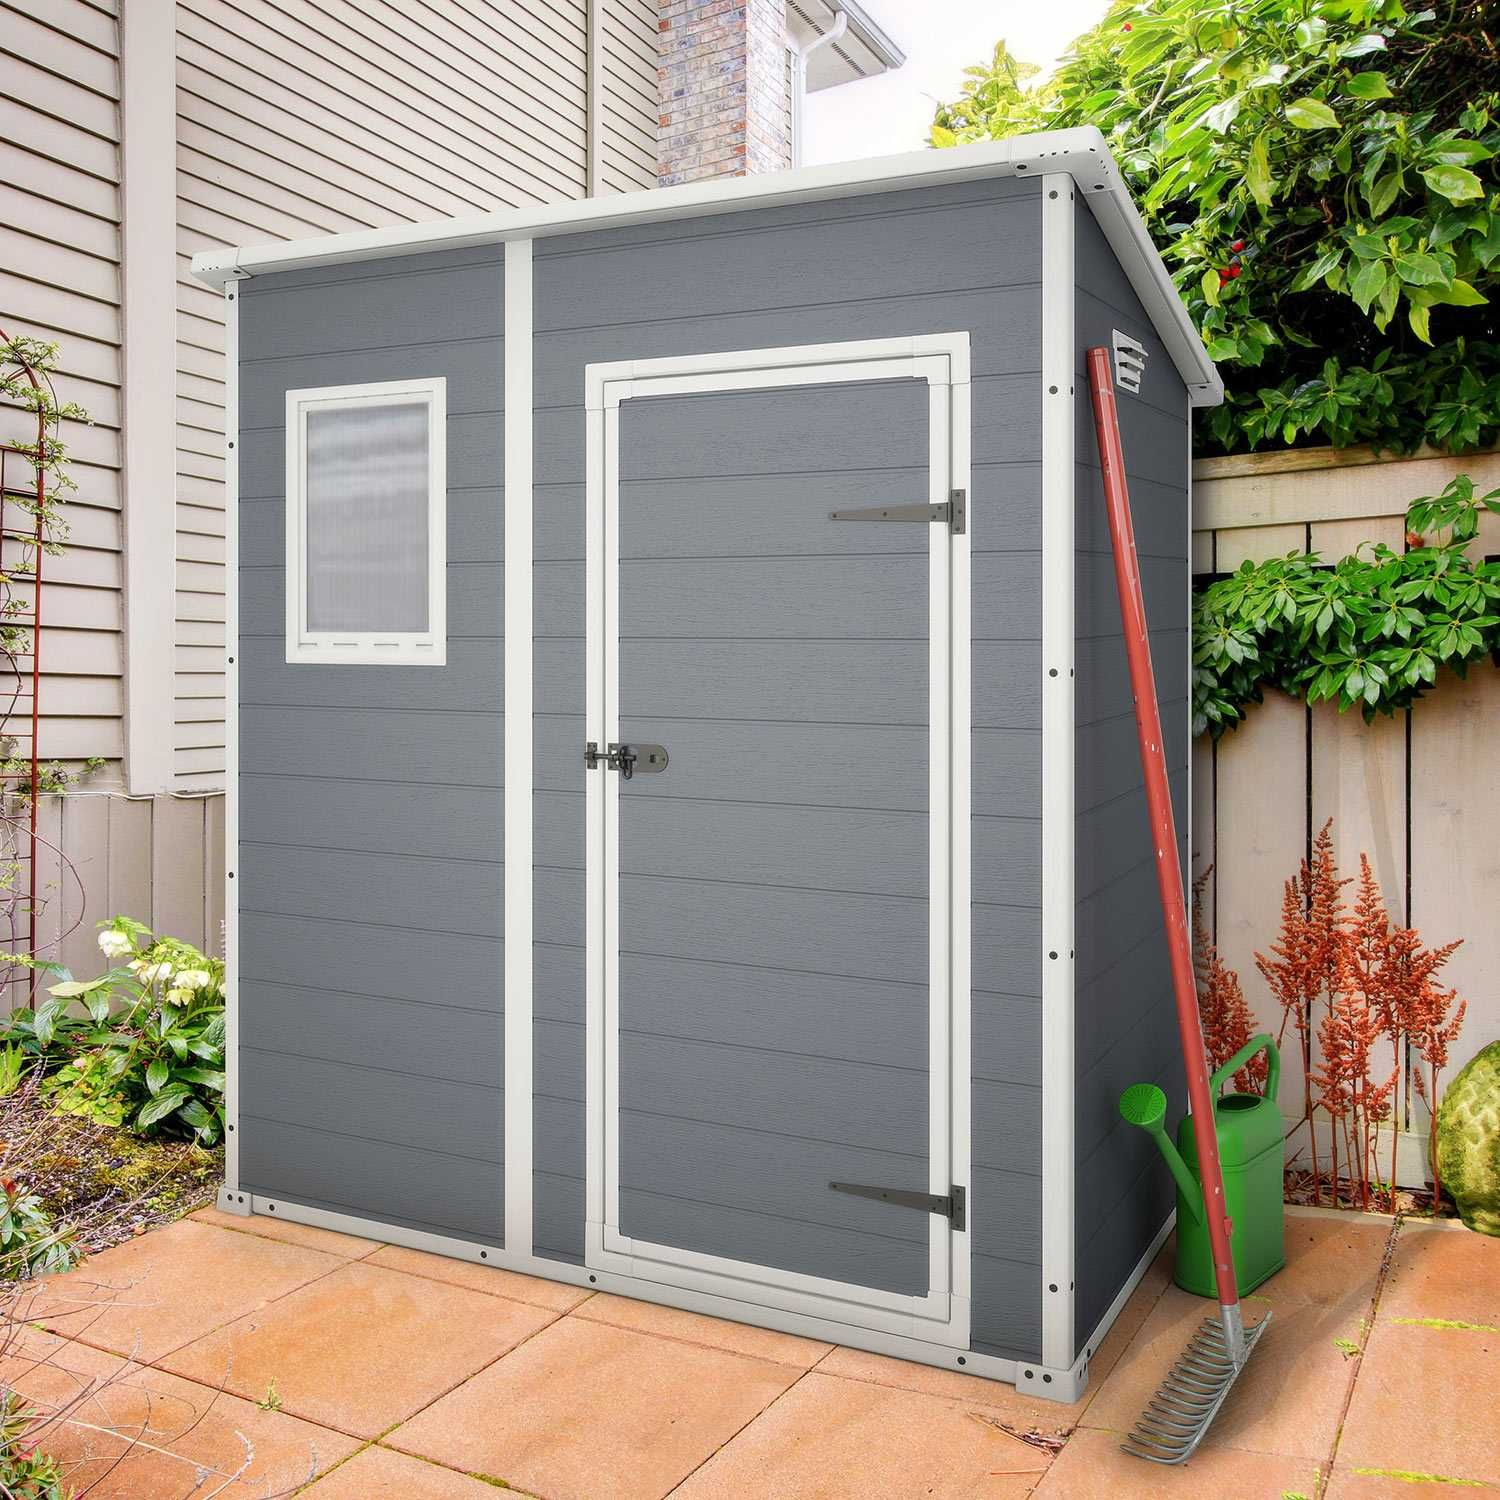 Keter Pent 6x4 Plastic Garden Shed Storage In 2019 Shed